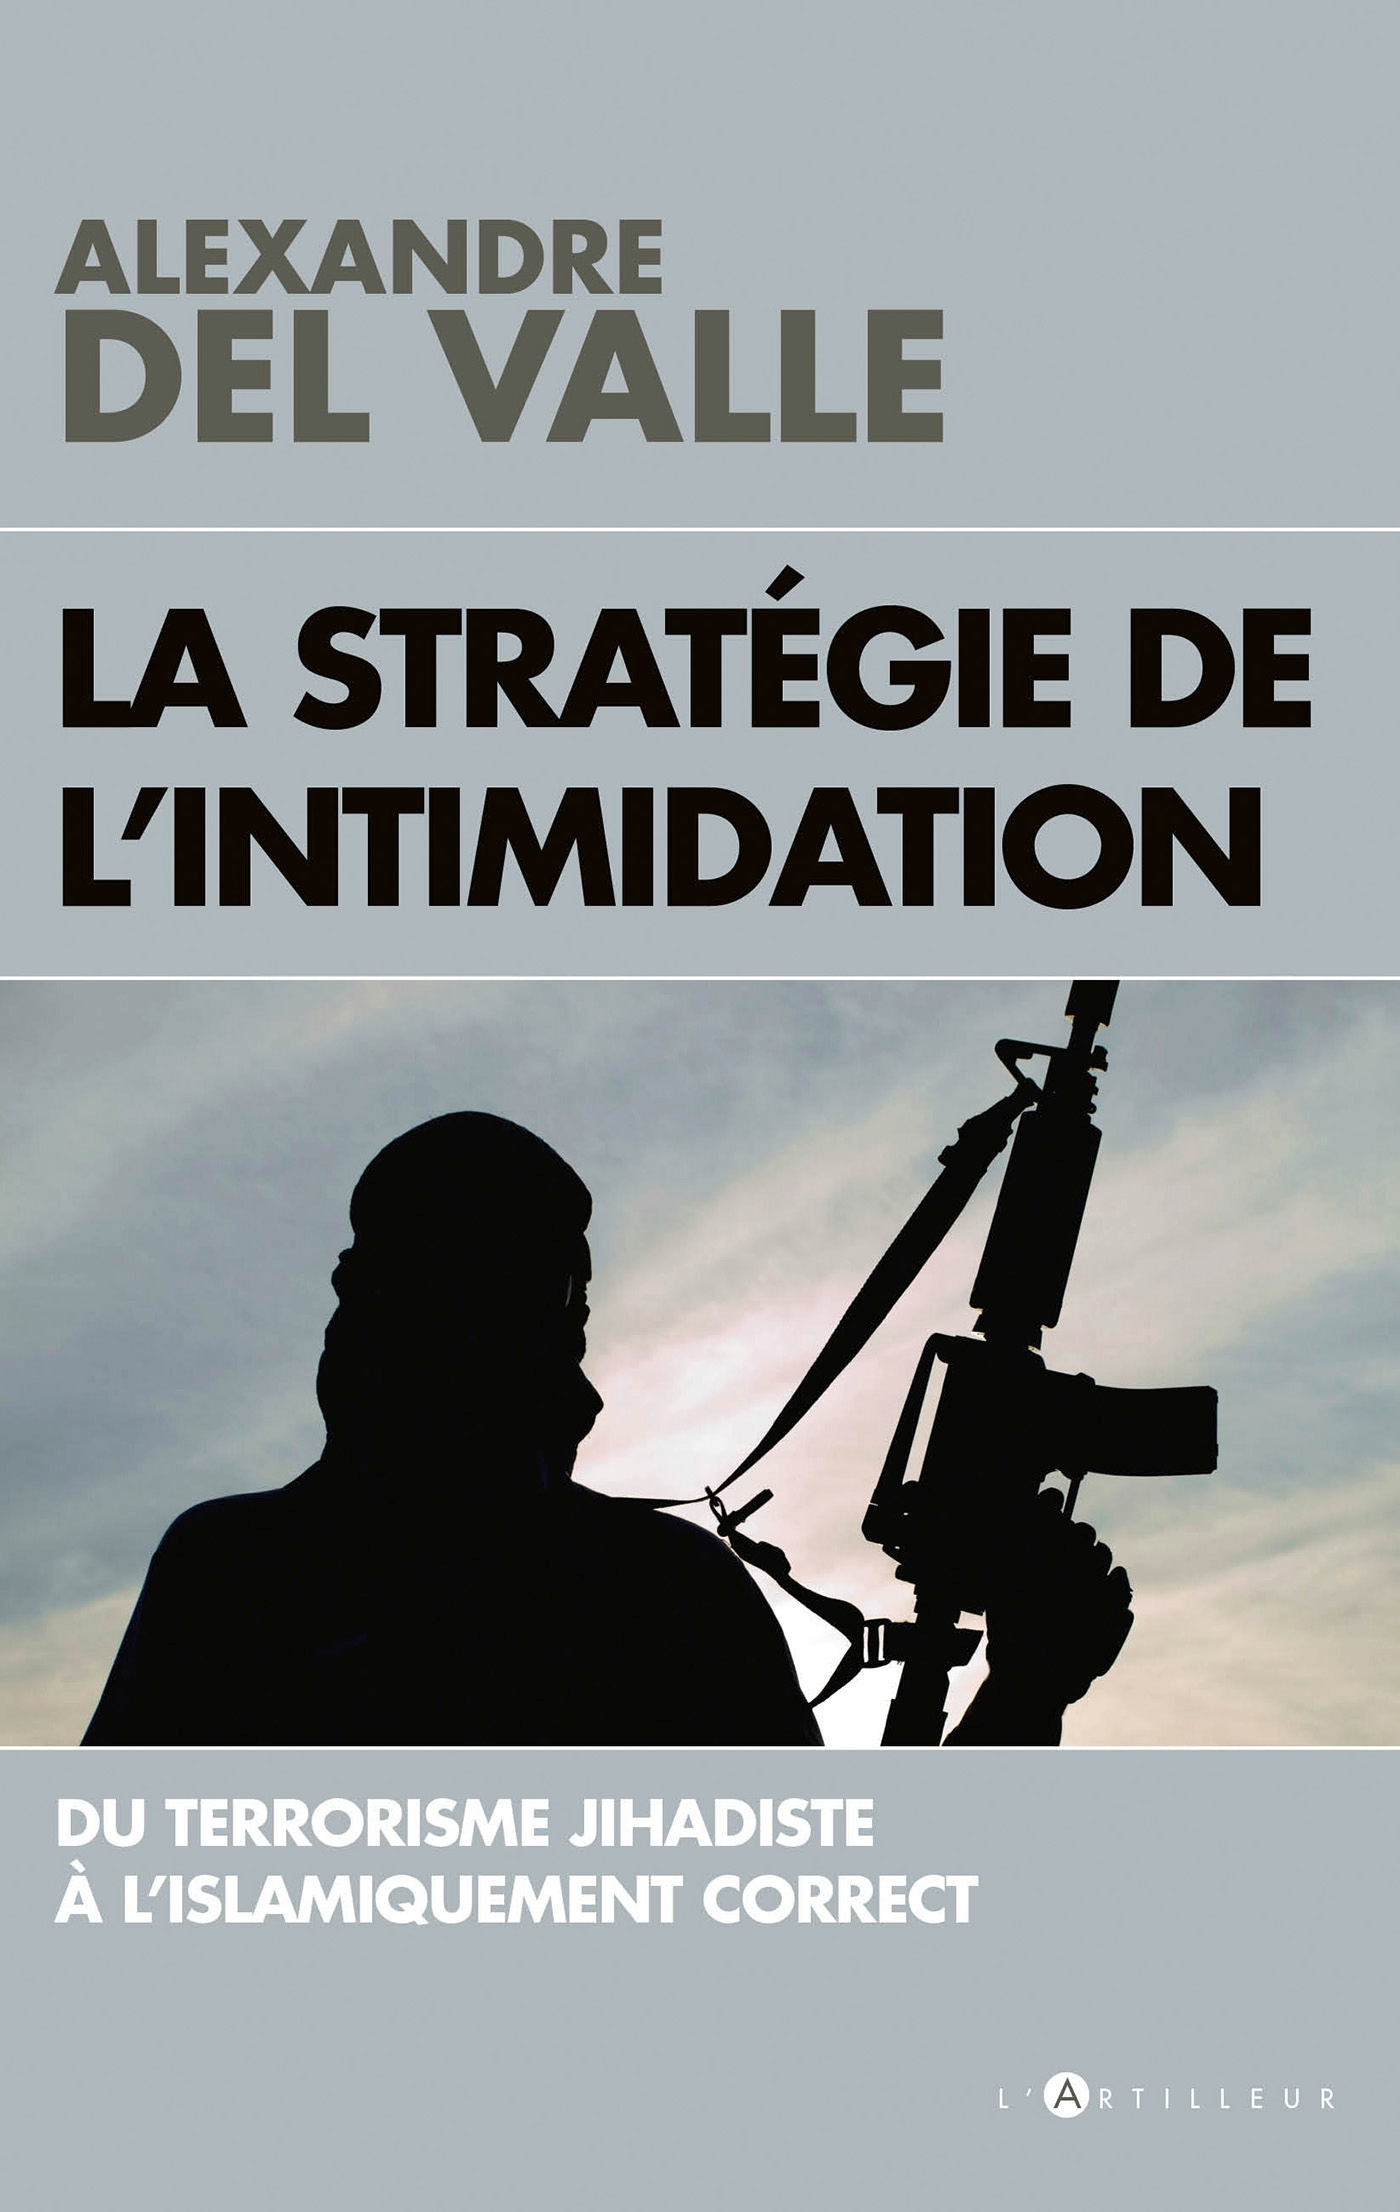 LA STRATEGIE DE L'INTIMIDATION